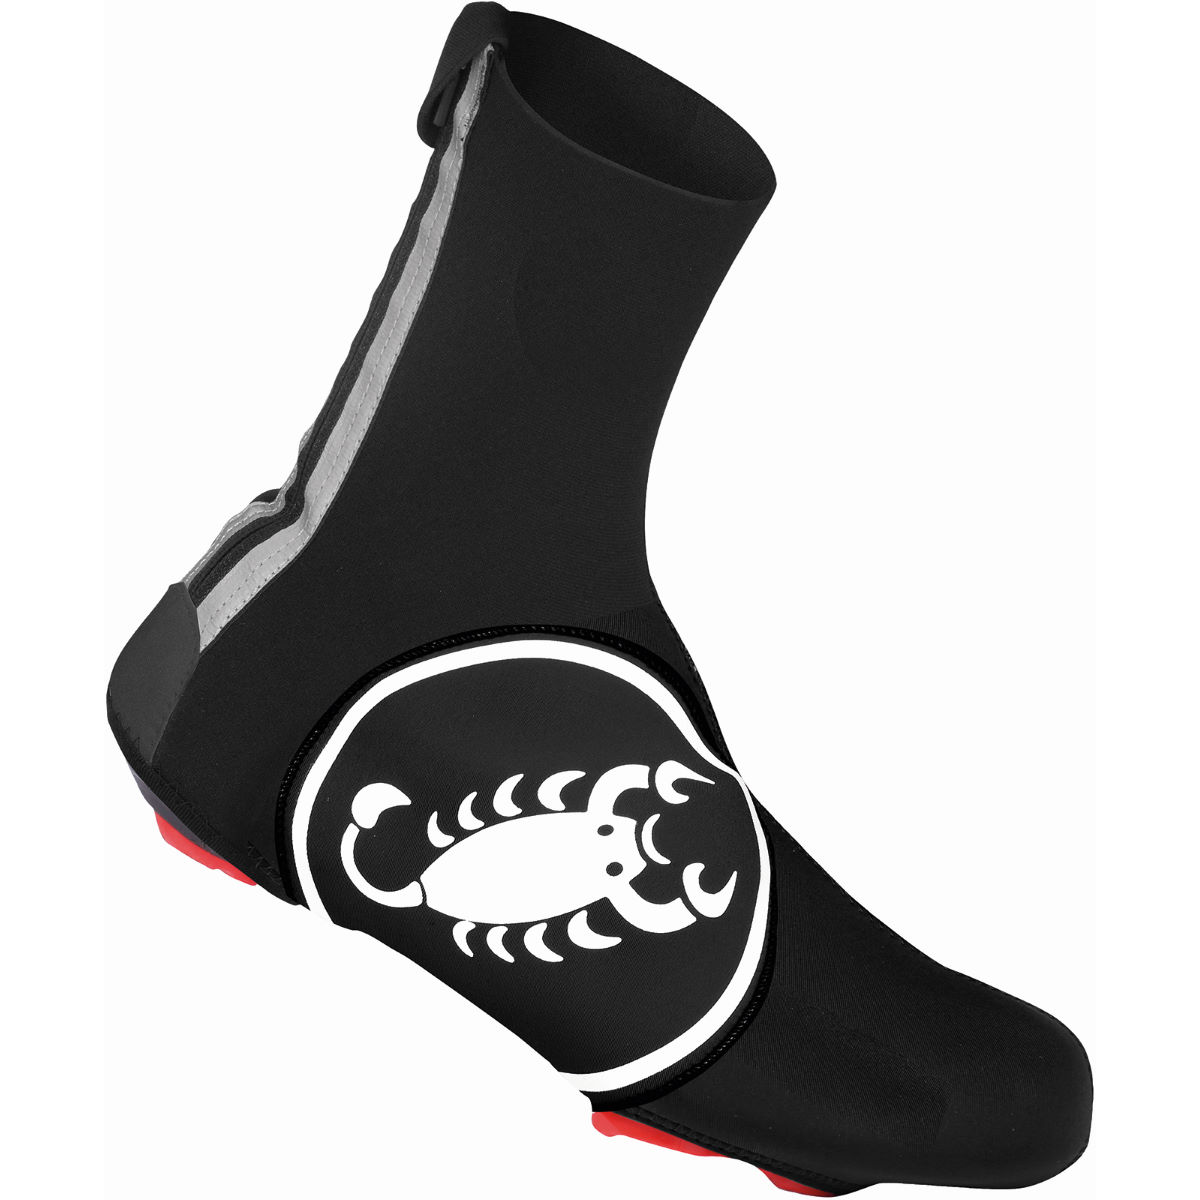 Couvre-chaussures Castelli Diluvio 16 - S/M Black/White Scorpion